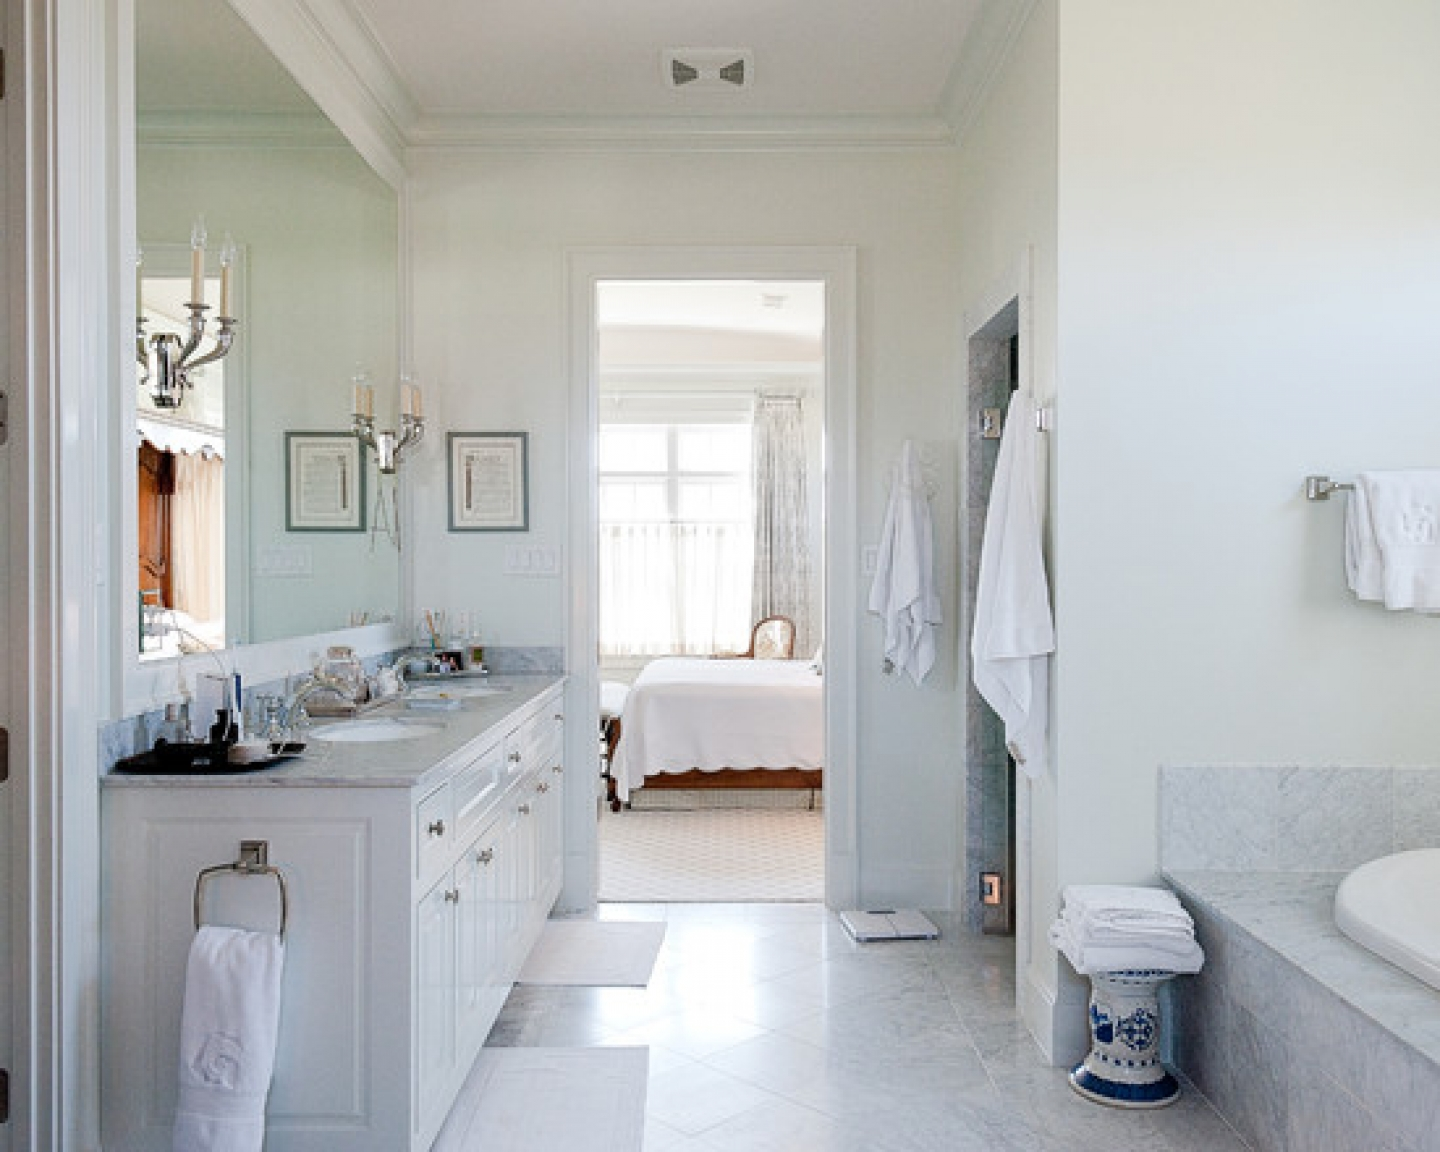 Traditional Bathroom Designs Pictures Ideas From Hgtv: Traditional Home Bathroom Ideas